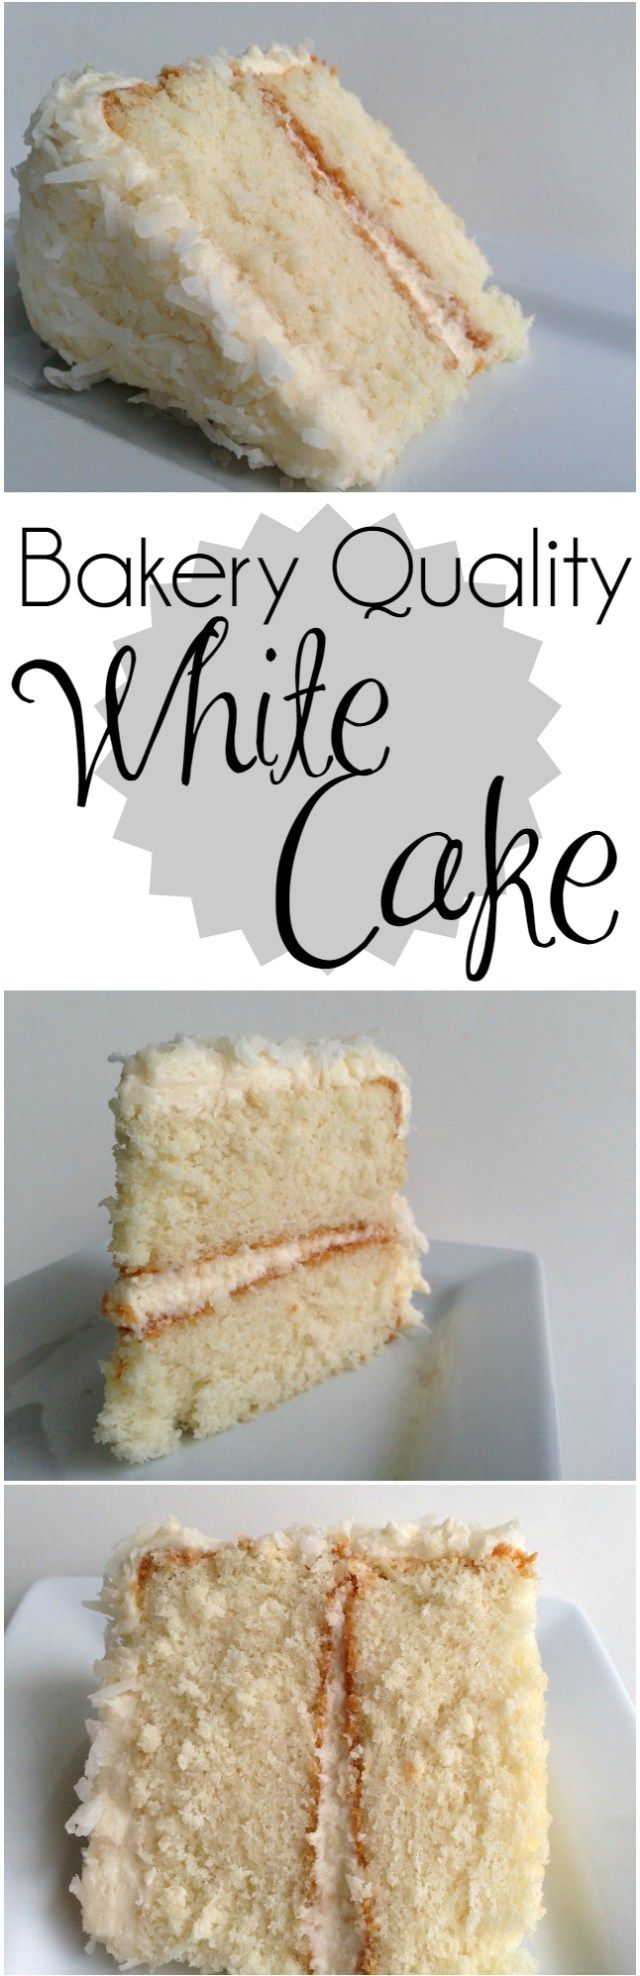 Making a Bakery Quality White Cake with Let Them Eat Cake! Buttercream Frosting